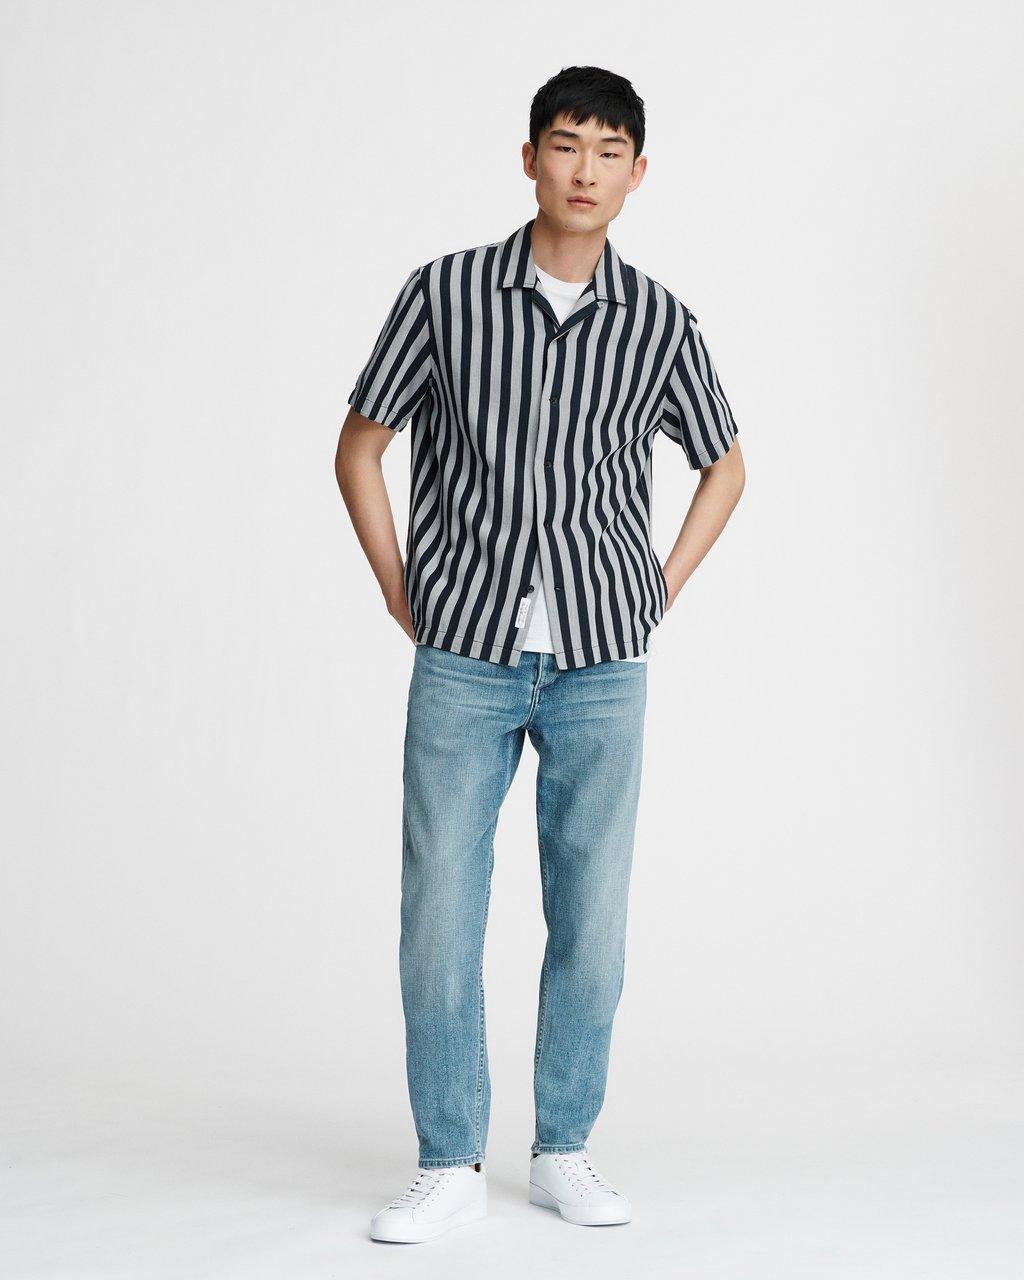 Avery Shirt - Cotton